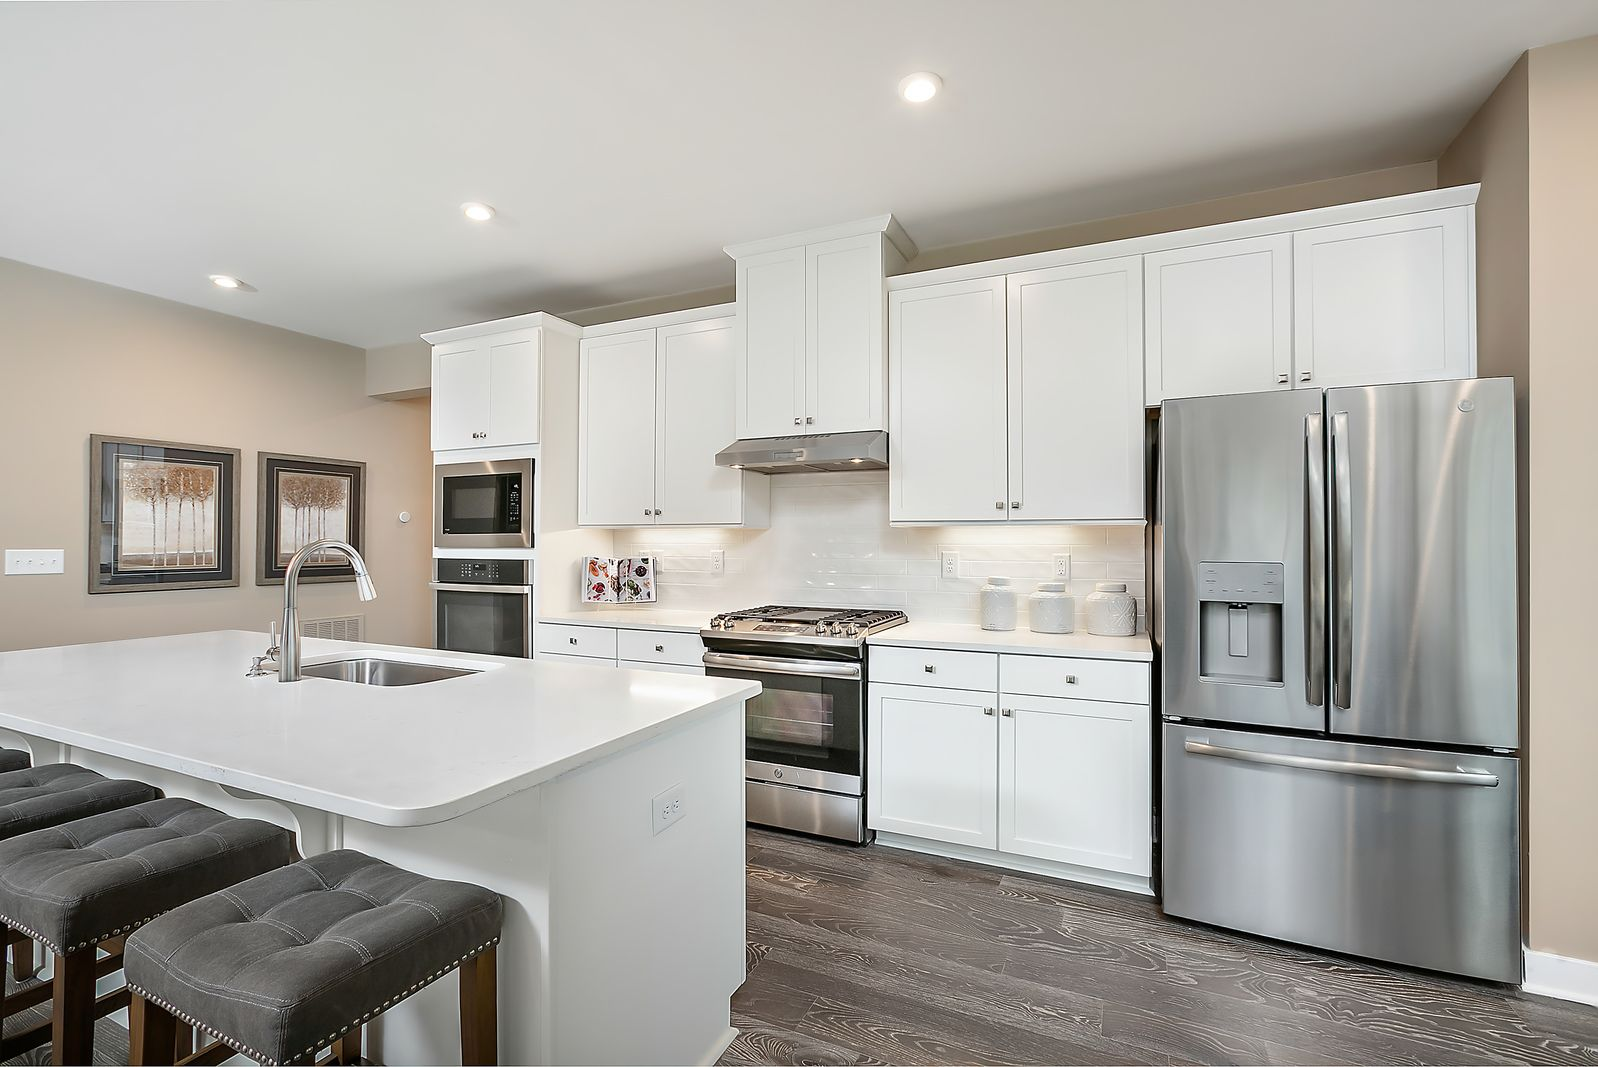 Kitchen featured in the Bramante Ranch By Ryan Homes in Chicago, IL